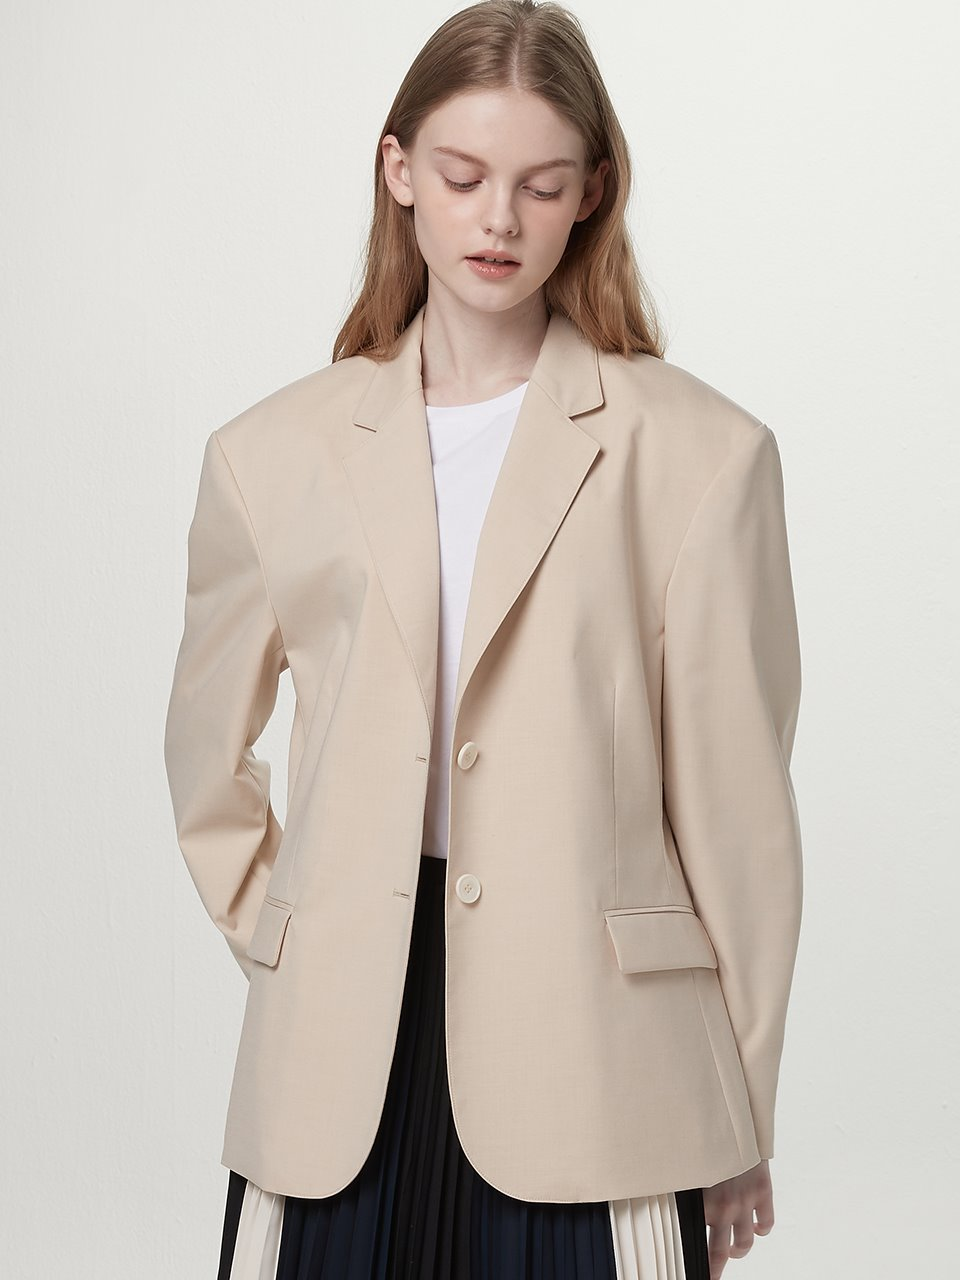 Single suit jacket - Cream beige